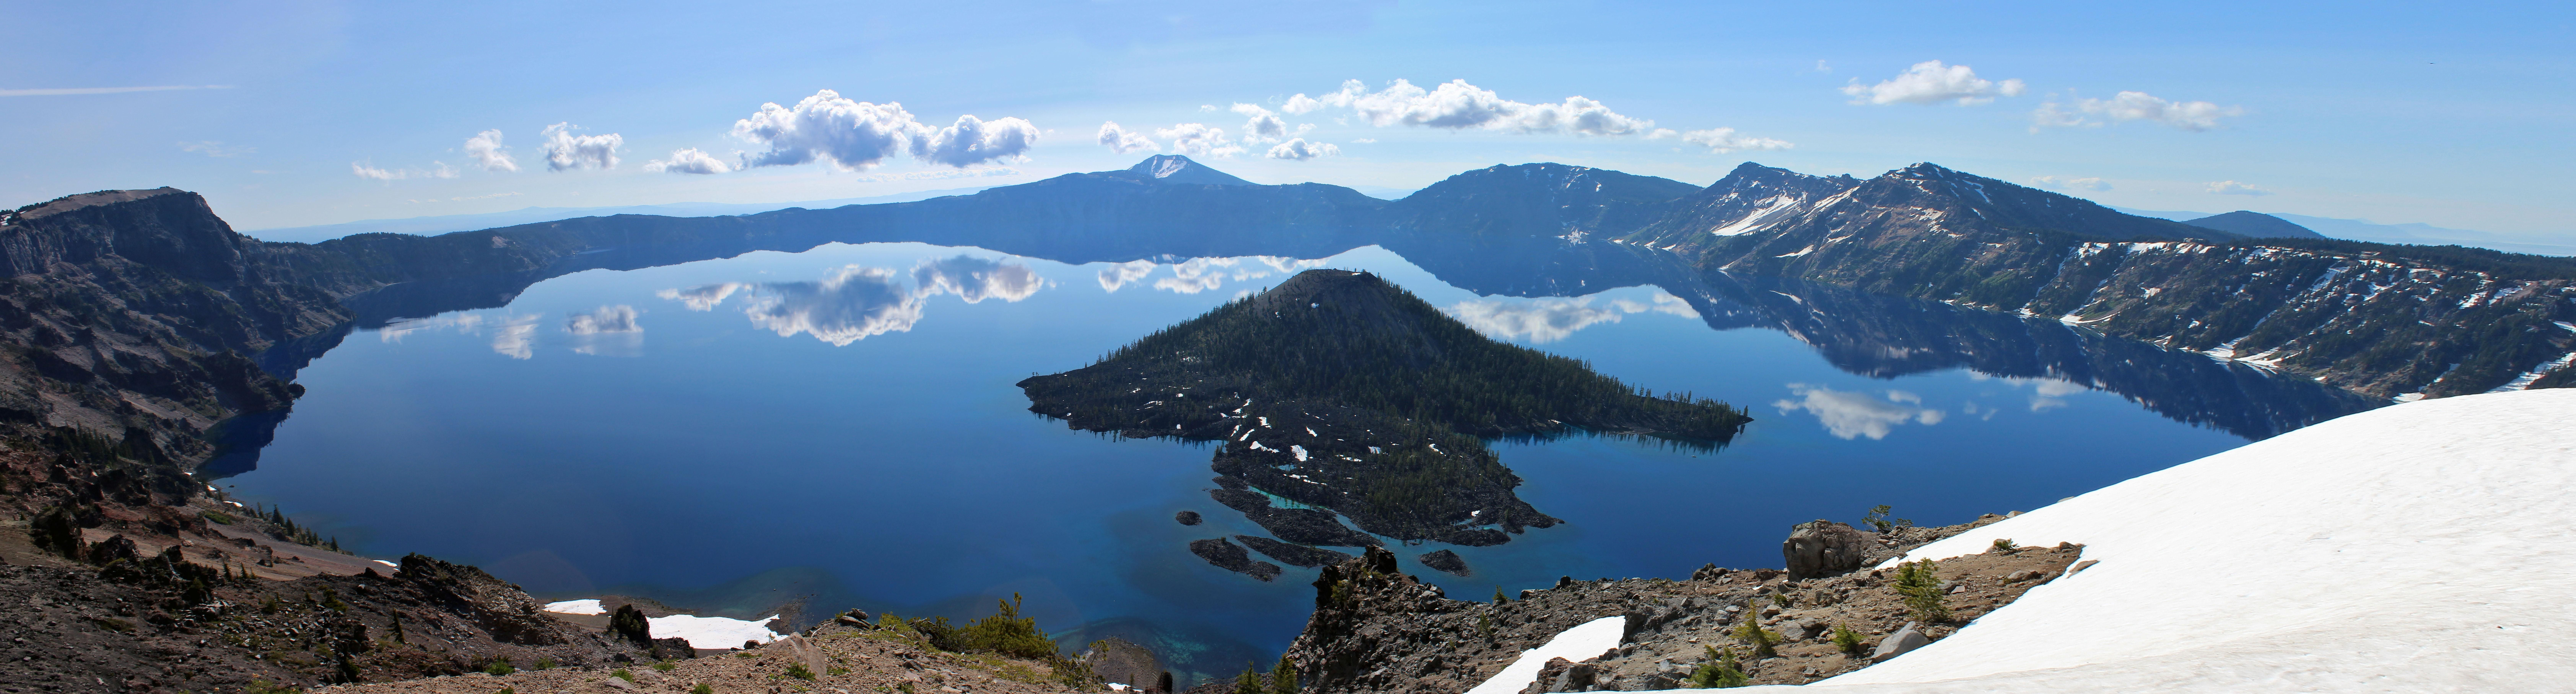 [OC] Wizard's Island Crater Lake National Park Oregon [9152 X 2890] #Music #IndieArtist #Chicago #craterlakenationalpark [OC] Wizard's Island Crater Lake National Park Oregon [9152 X 2890] #Music #IndieArtist #Chicago #craterlakenationalpark [OC] Wizard's Island Crater Lake National Park Oregon [9152 X 2890] #Music #IndieArtist #Chicago #craterlakenationalpark [OC] Wizard's Island Crater Lake National Park Oregon [9152 X 2890] #Music #IndieArtist #Chicago #craterlakeoregon